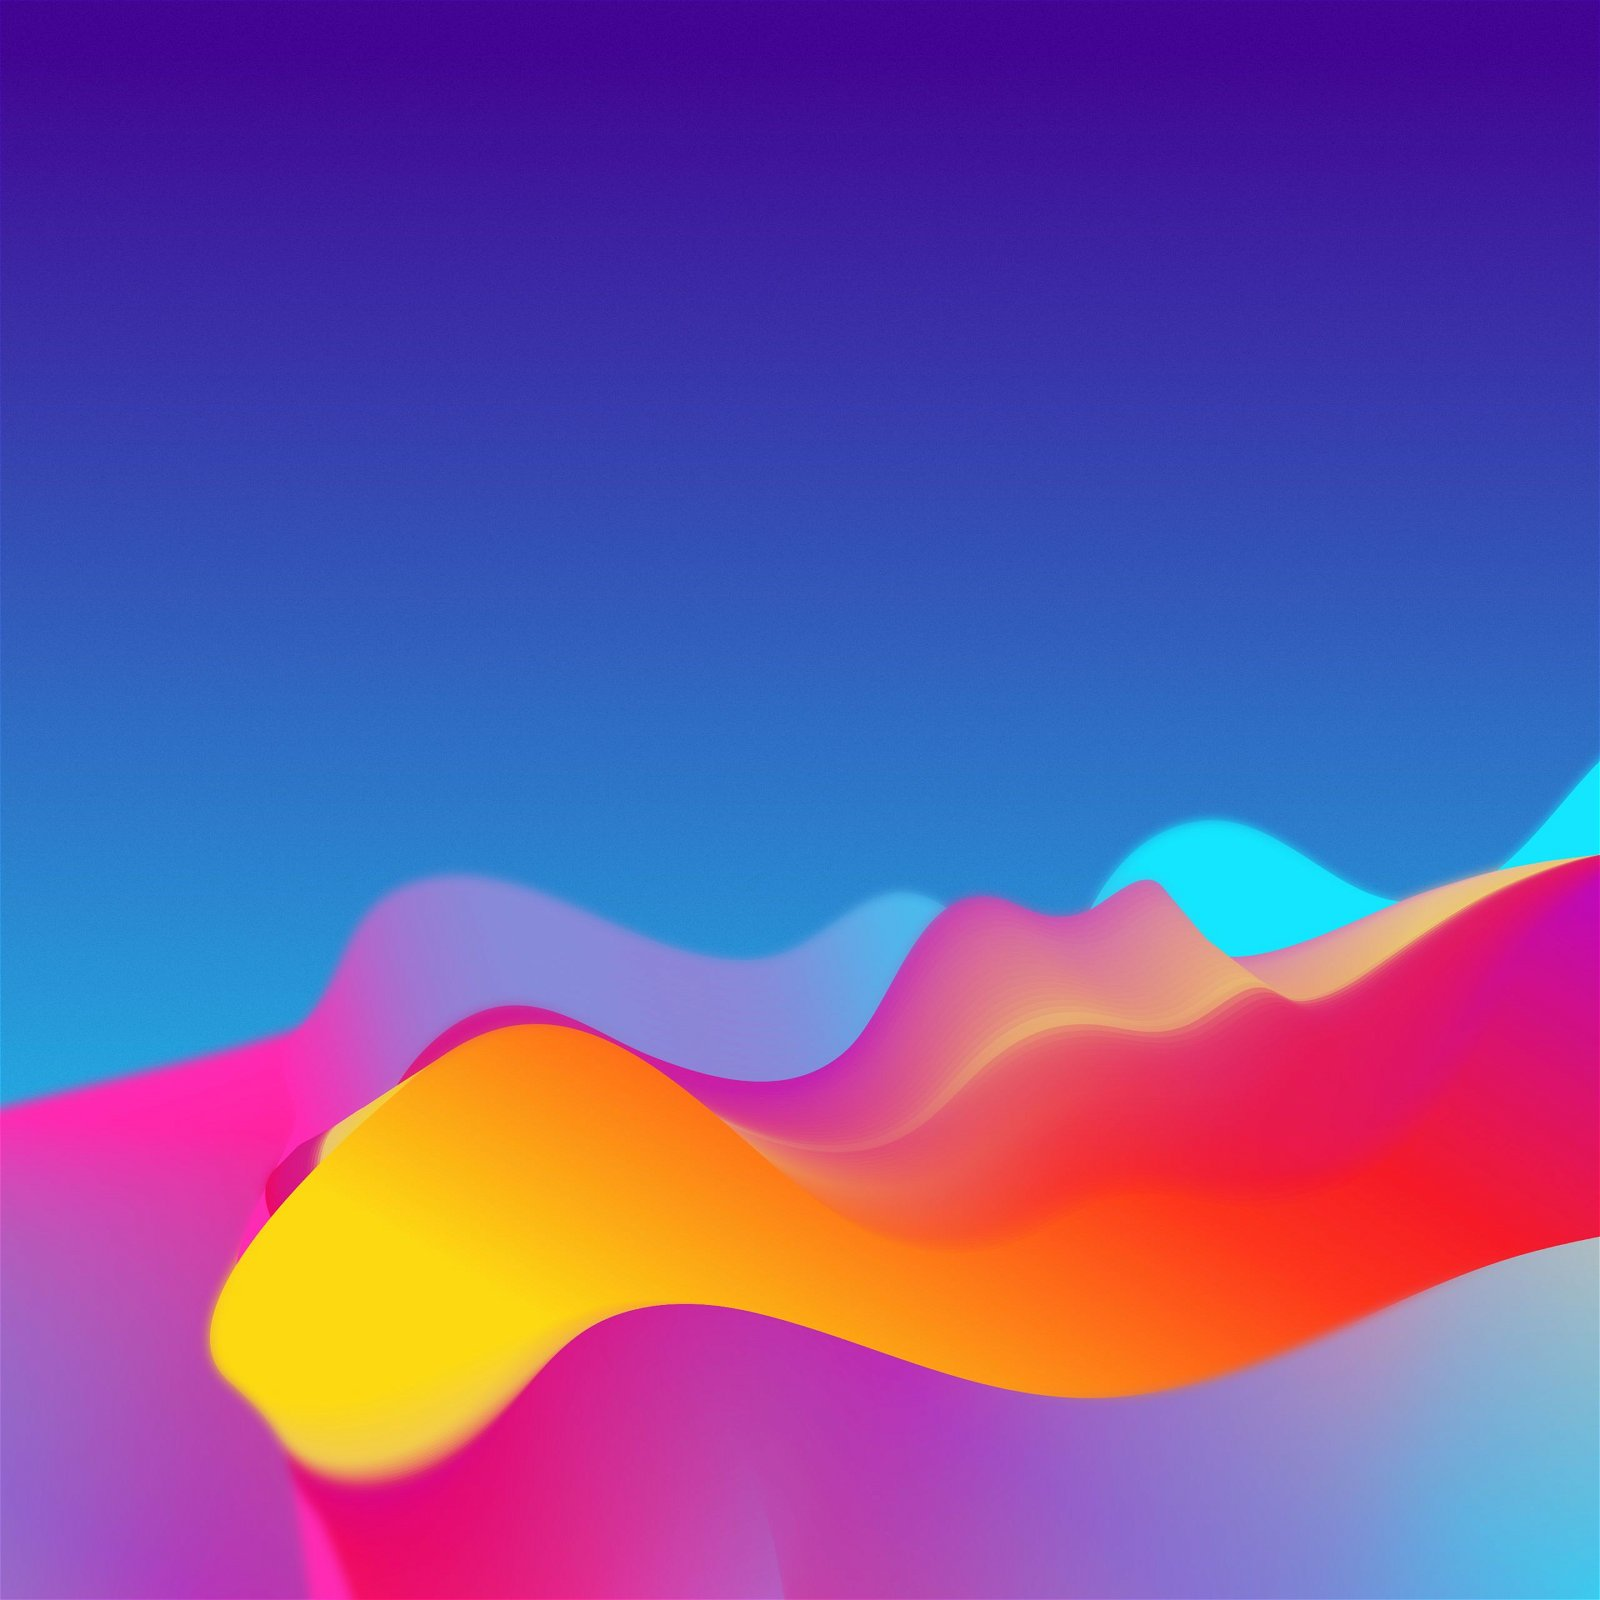 HTC U12 Plus Wallpapers | Download 10 Beautiful Abstract Images 3